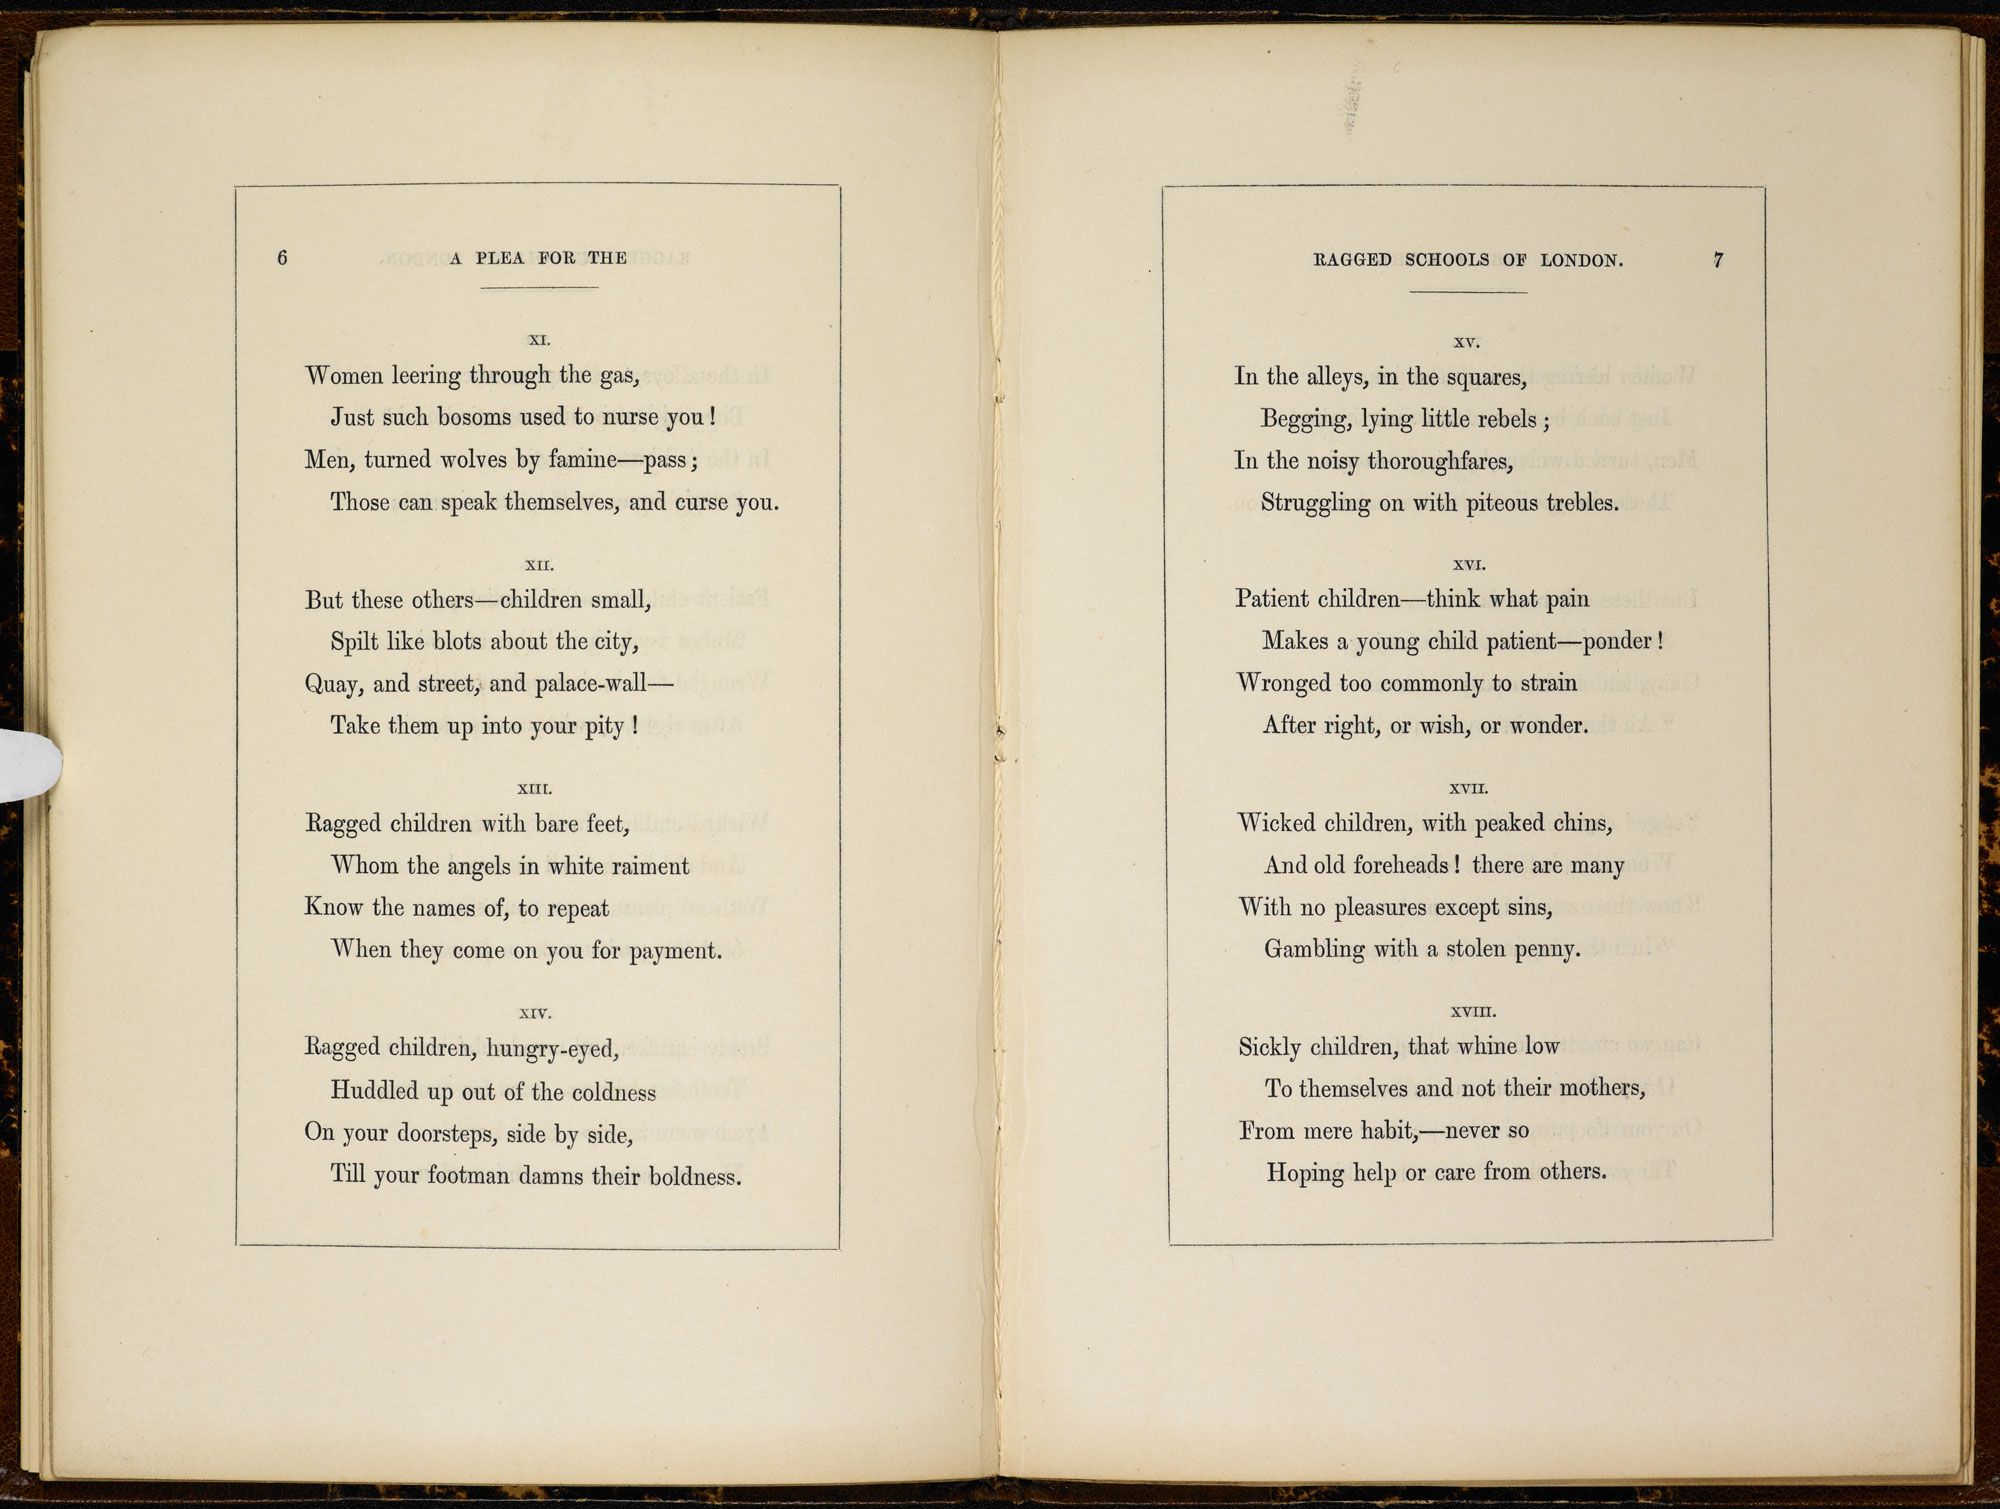 A Plea for the Ragged Schools of London' by Elizabeth Barrett Browning [page: 6-7]